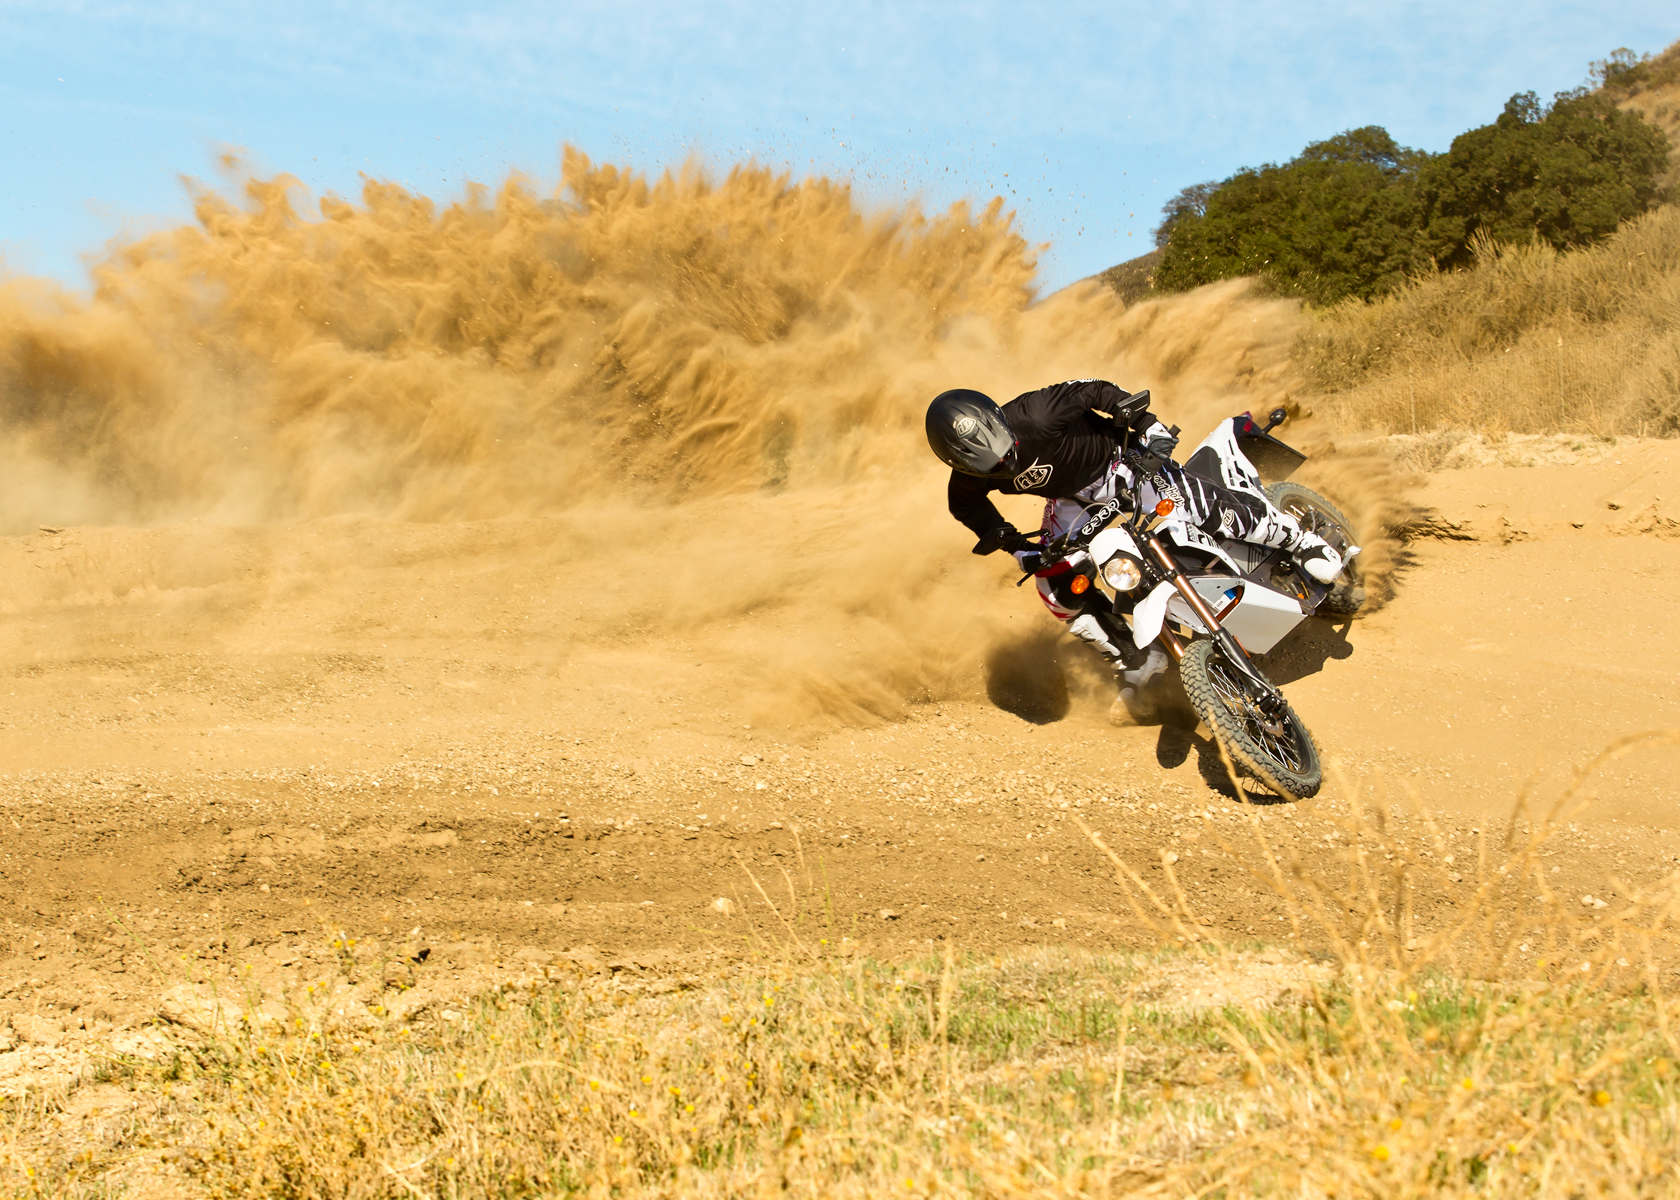 '.2012 Zero X Electric Motorcycle: Dirt Track, Foot Down.'